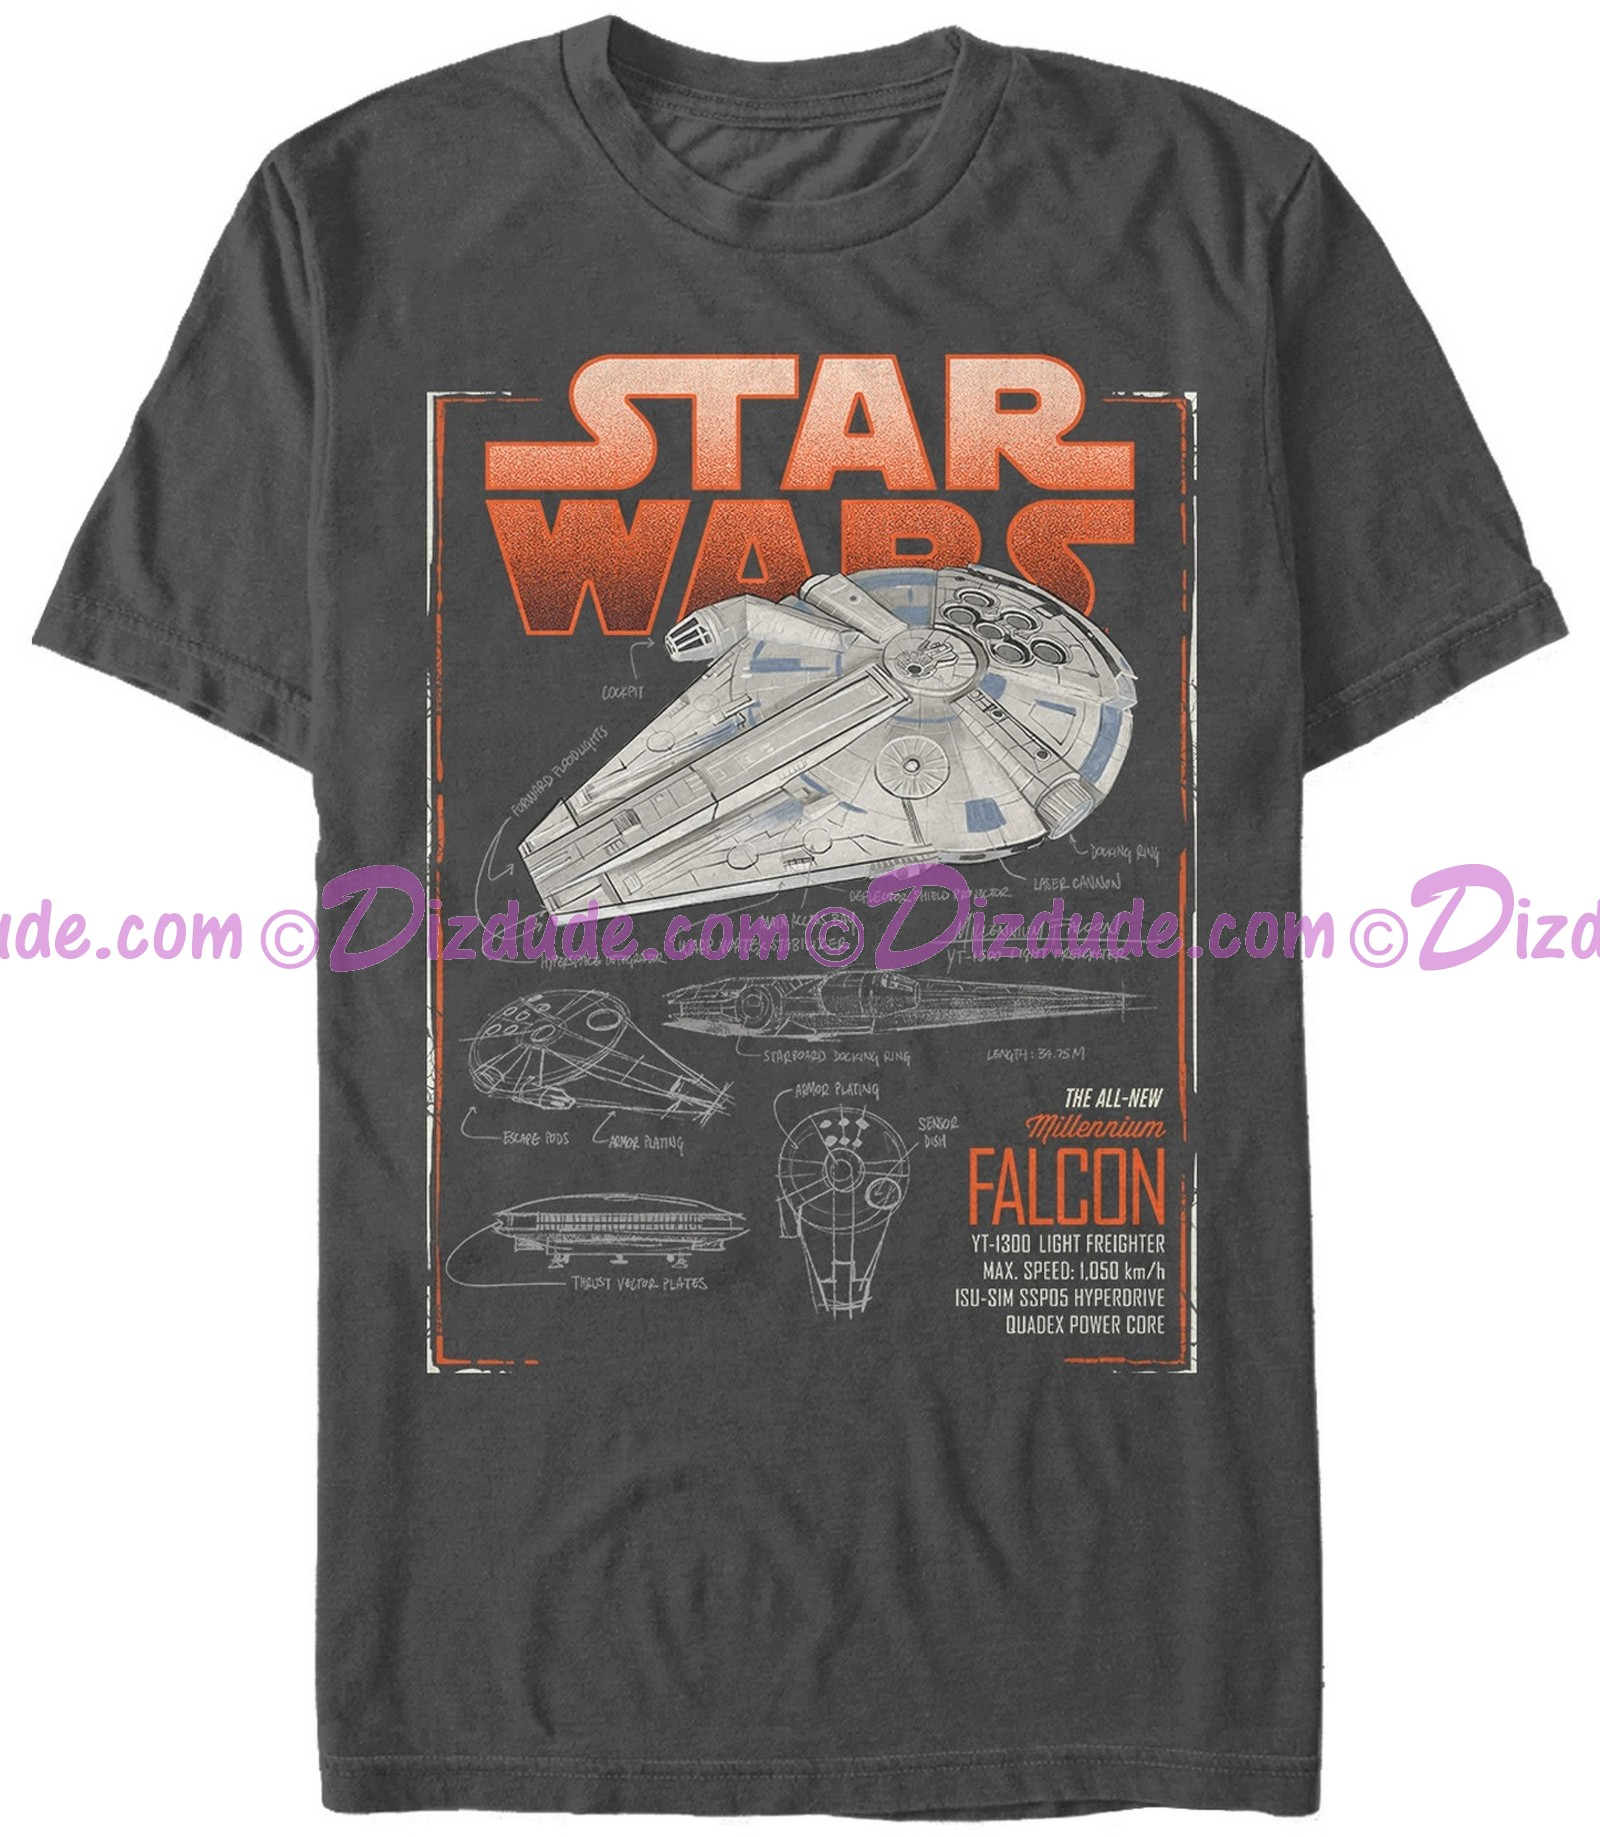 SOLO A Star Wars Story The Millennium Falcon Schematics Adult T-Shirt (Tshirt, T shirt or Tee)  © Dizdude.com